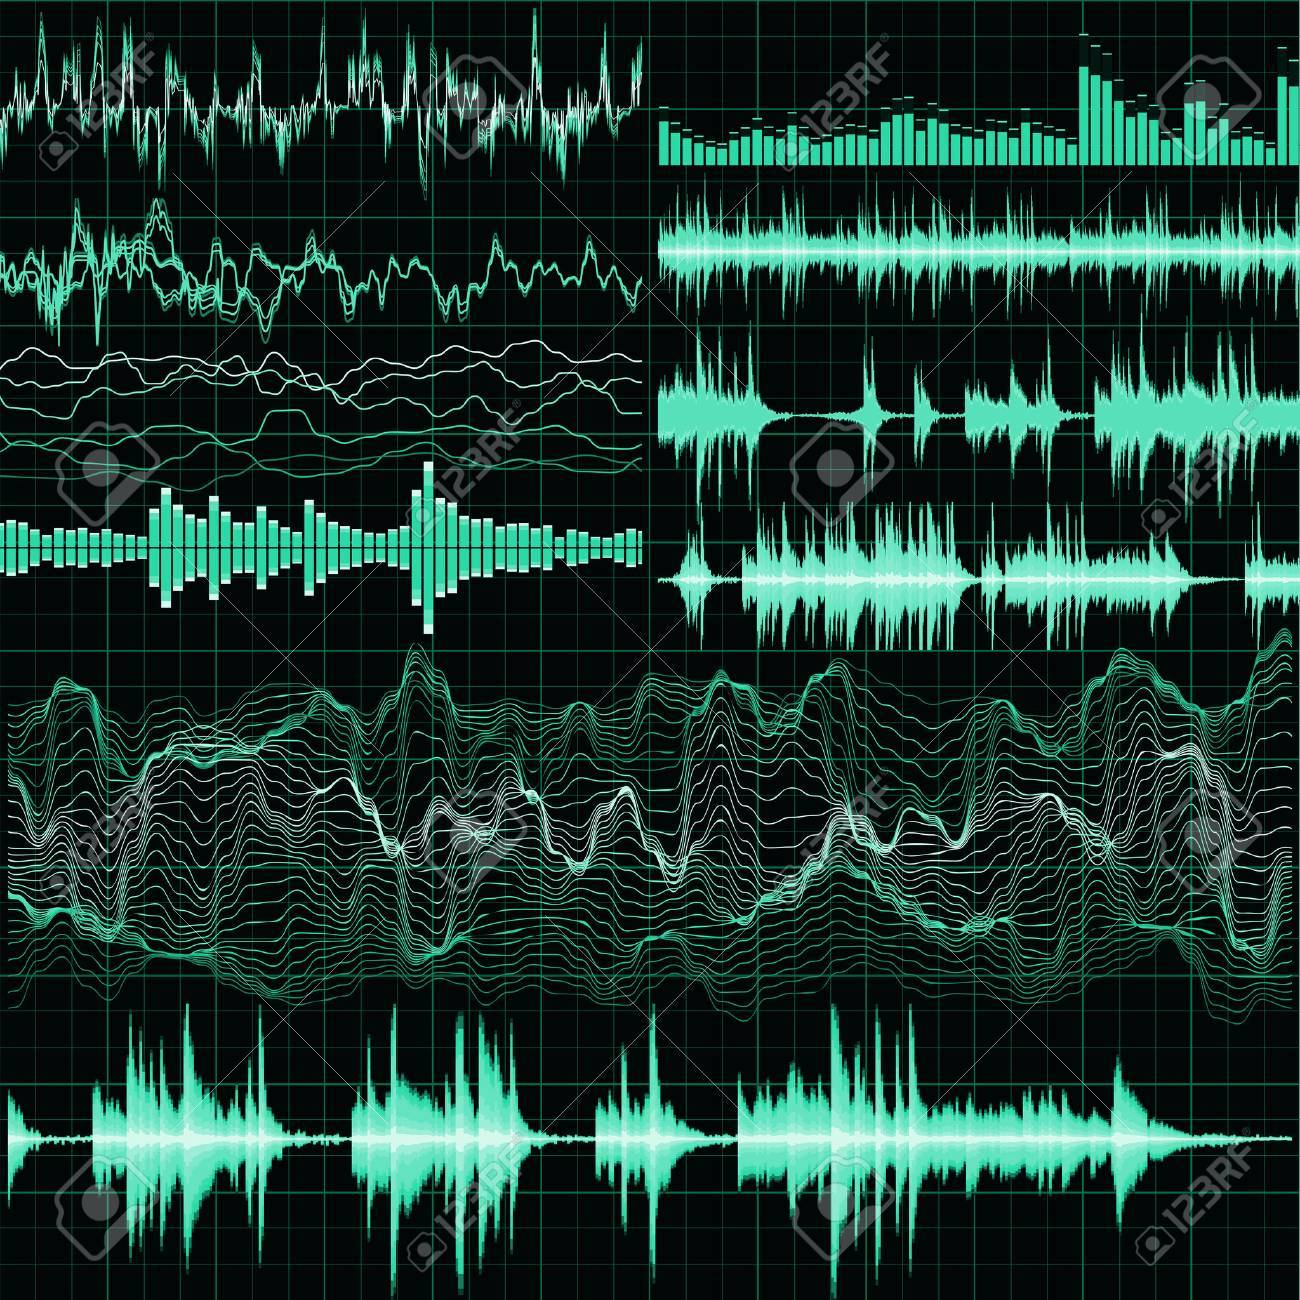 Sound waves set. Music background. EPS 10 vector file included - 67480777